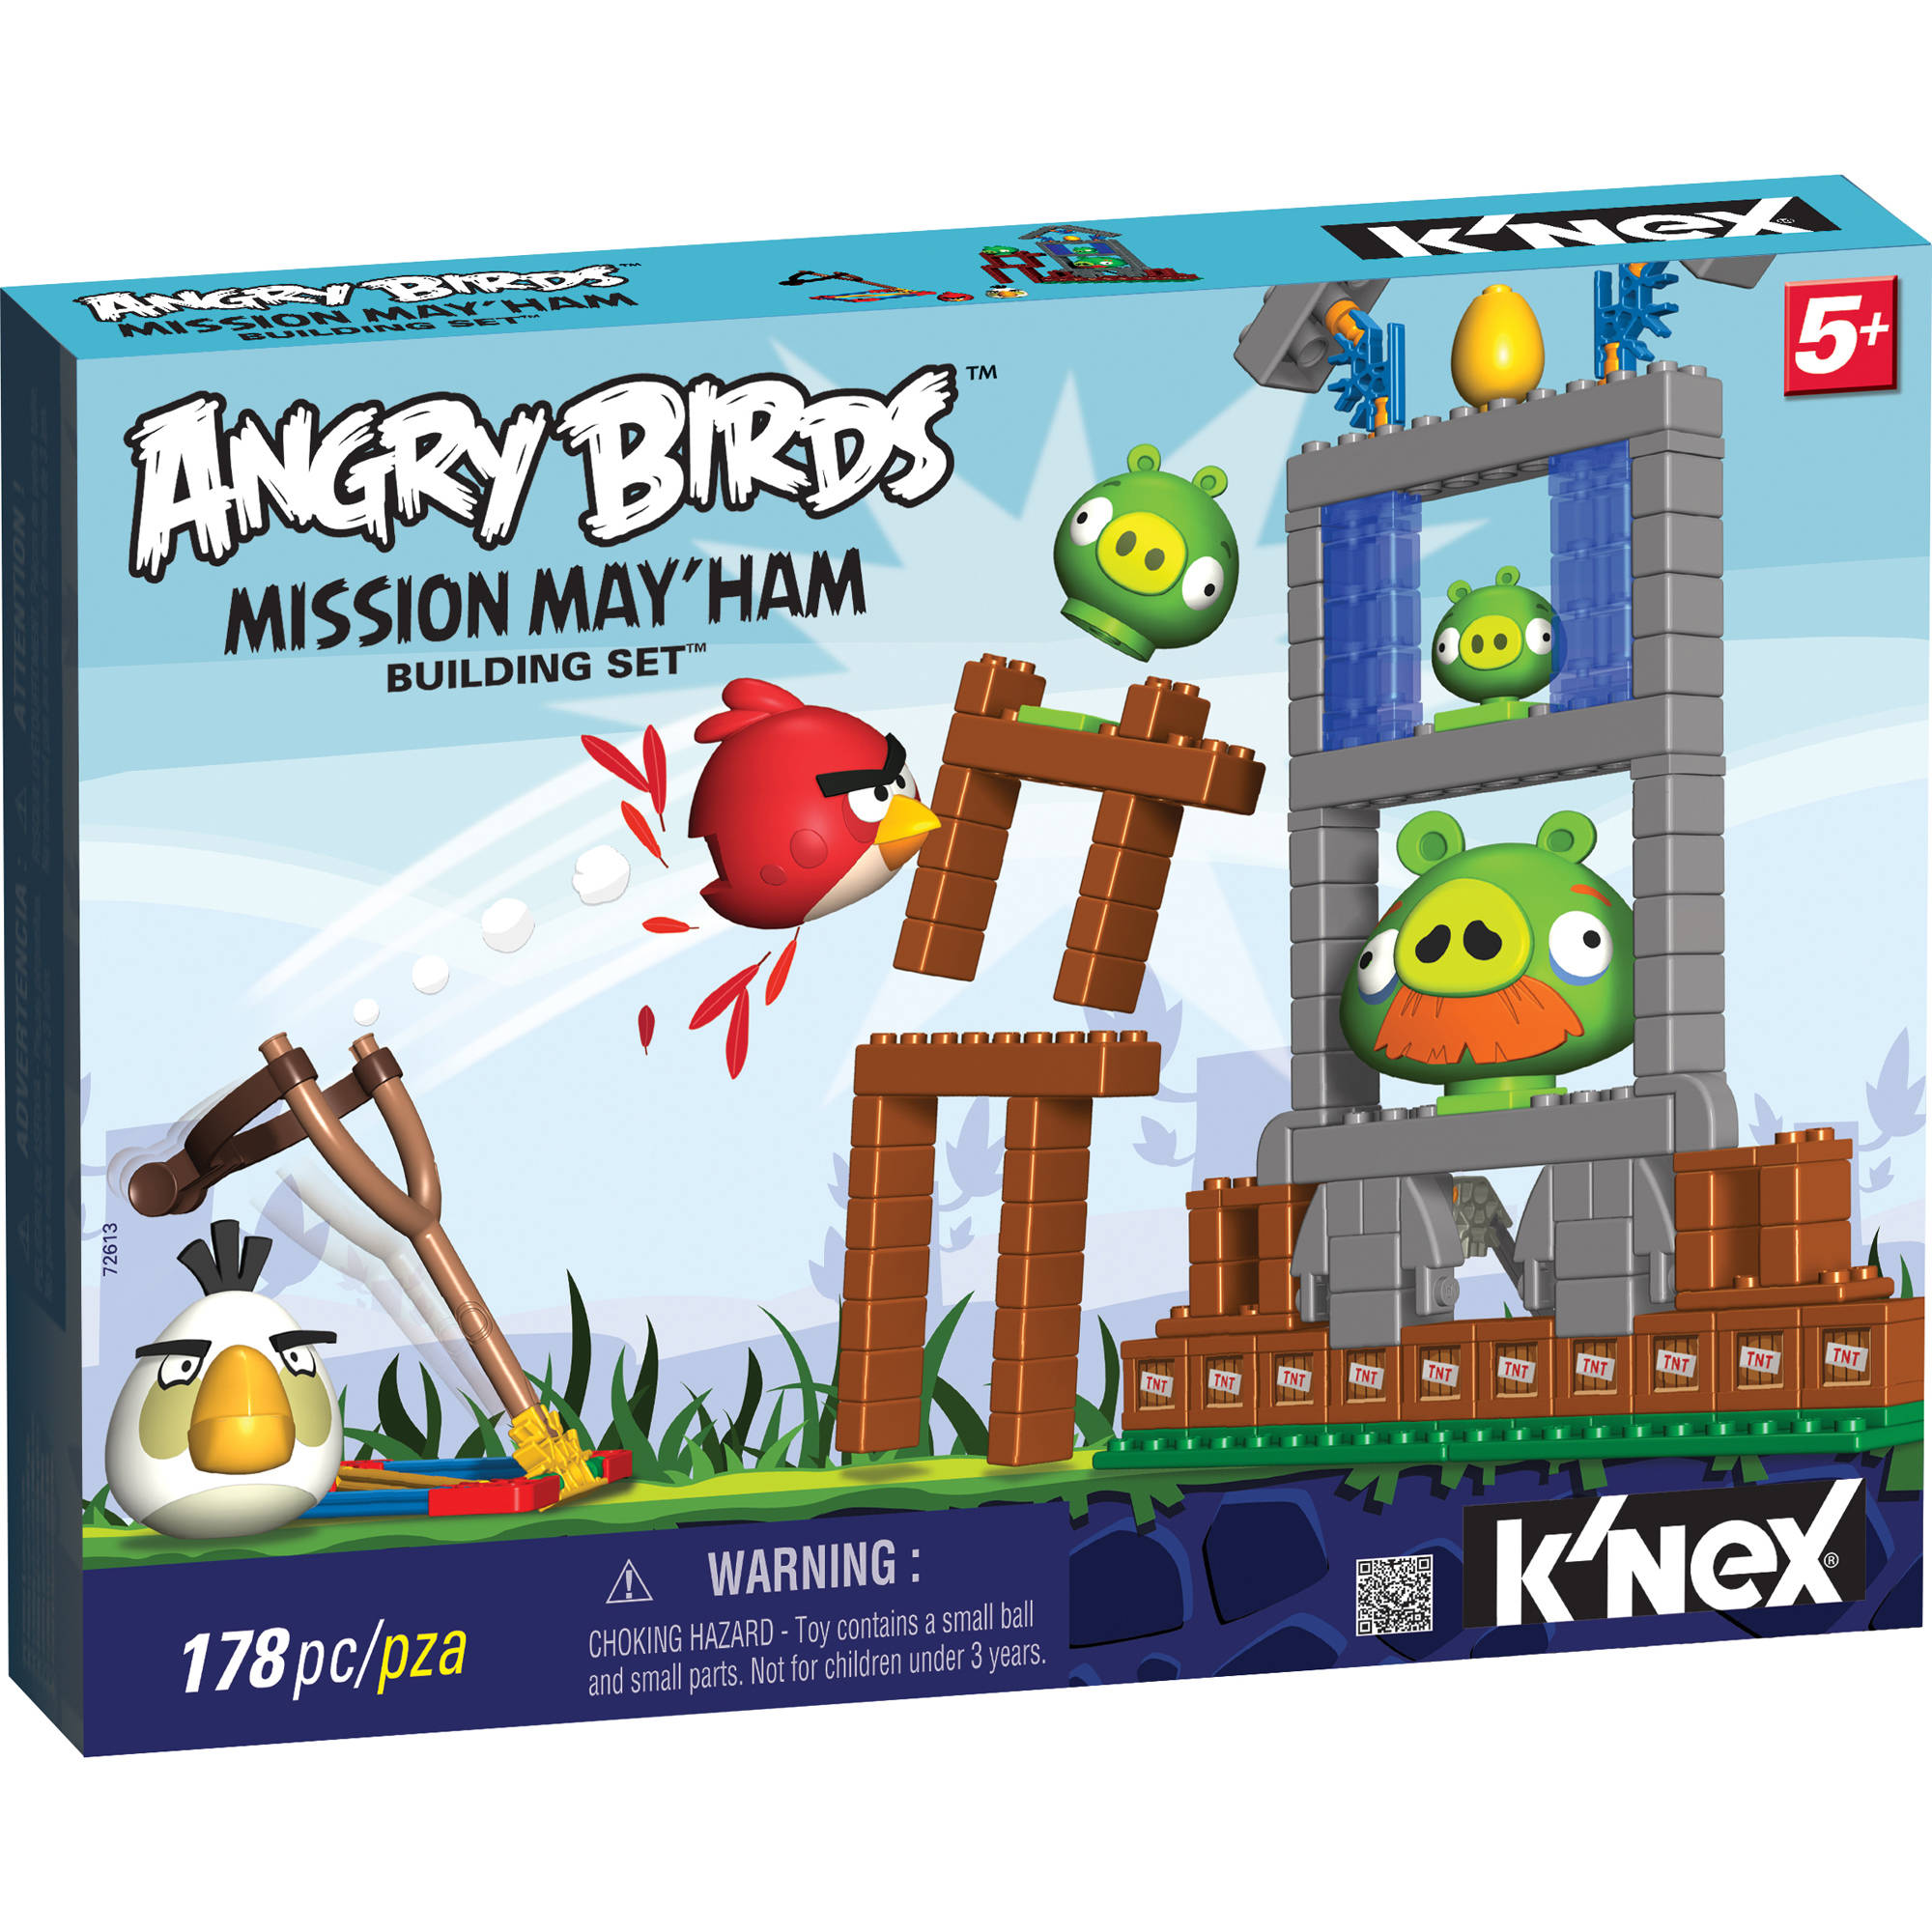 K'NEX Angry Birds Building Set: Mission May'ham